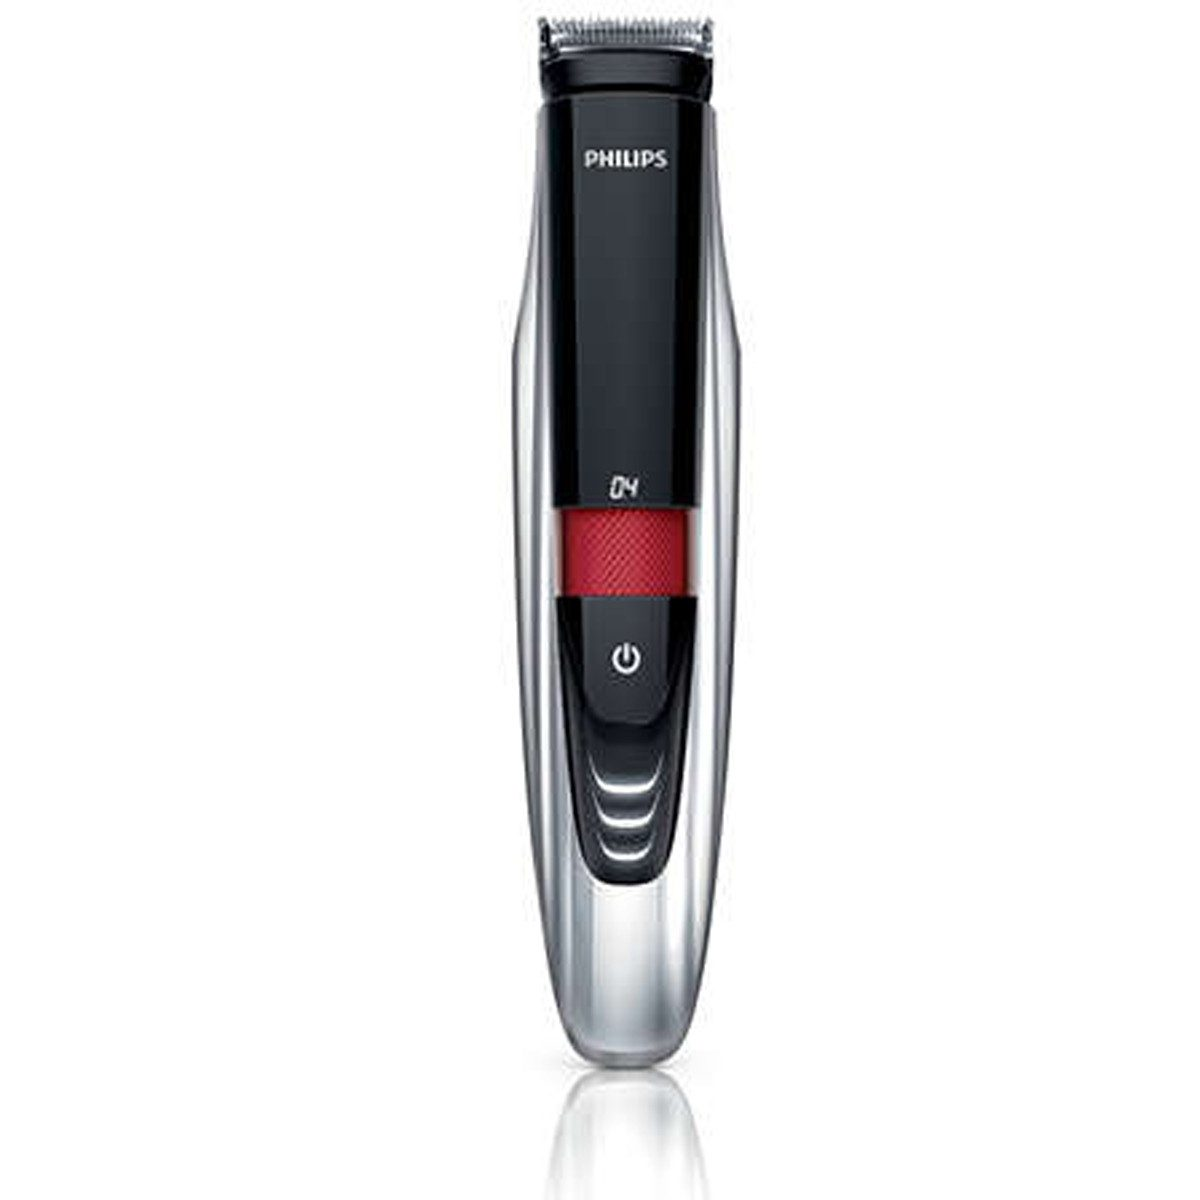 Philips BT 9280 Laser Guided Trimmer